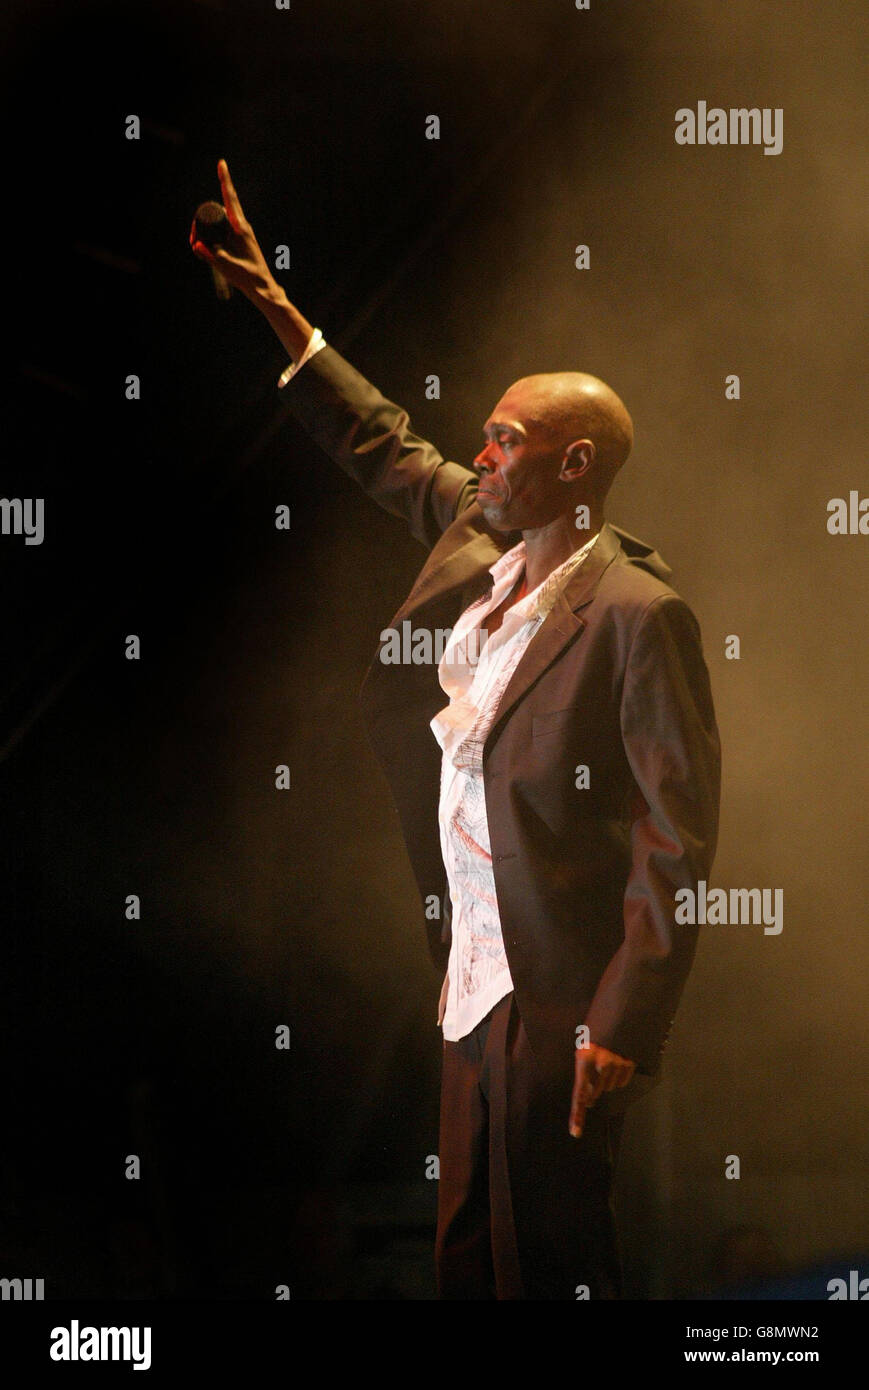 Faithless On Stage At The Botanic Gardens In Belfast Stock Photos ...